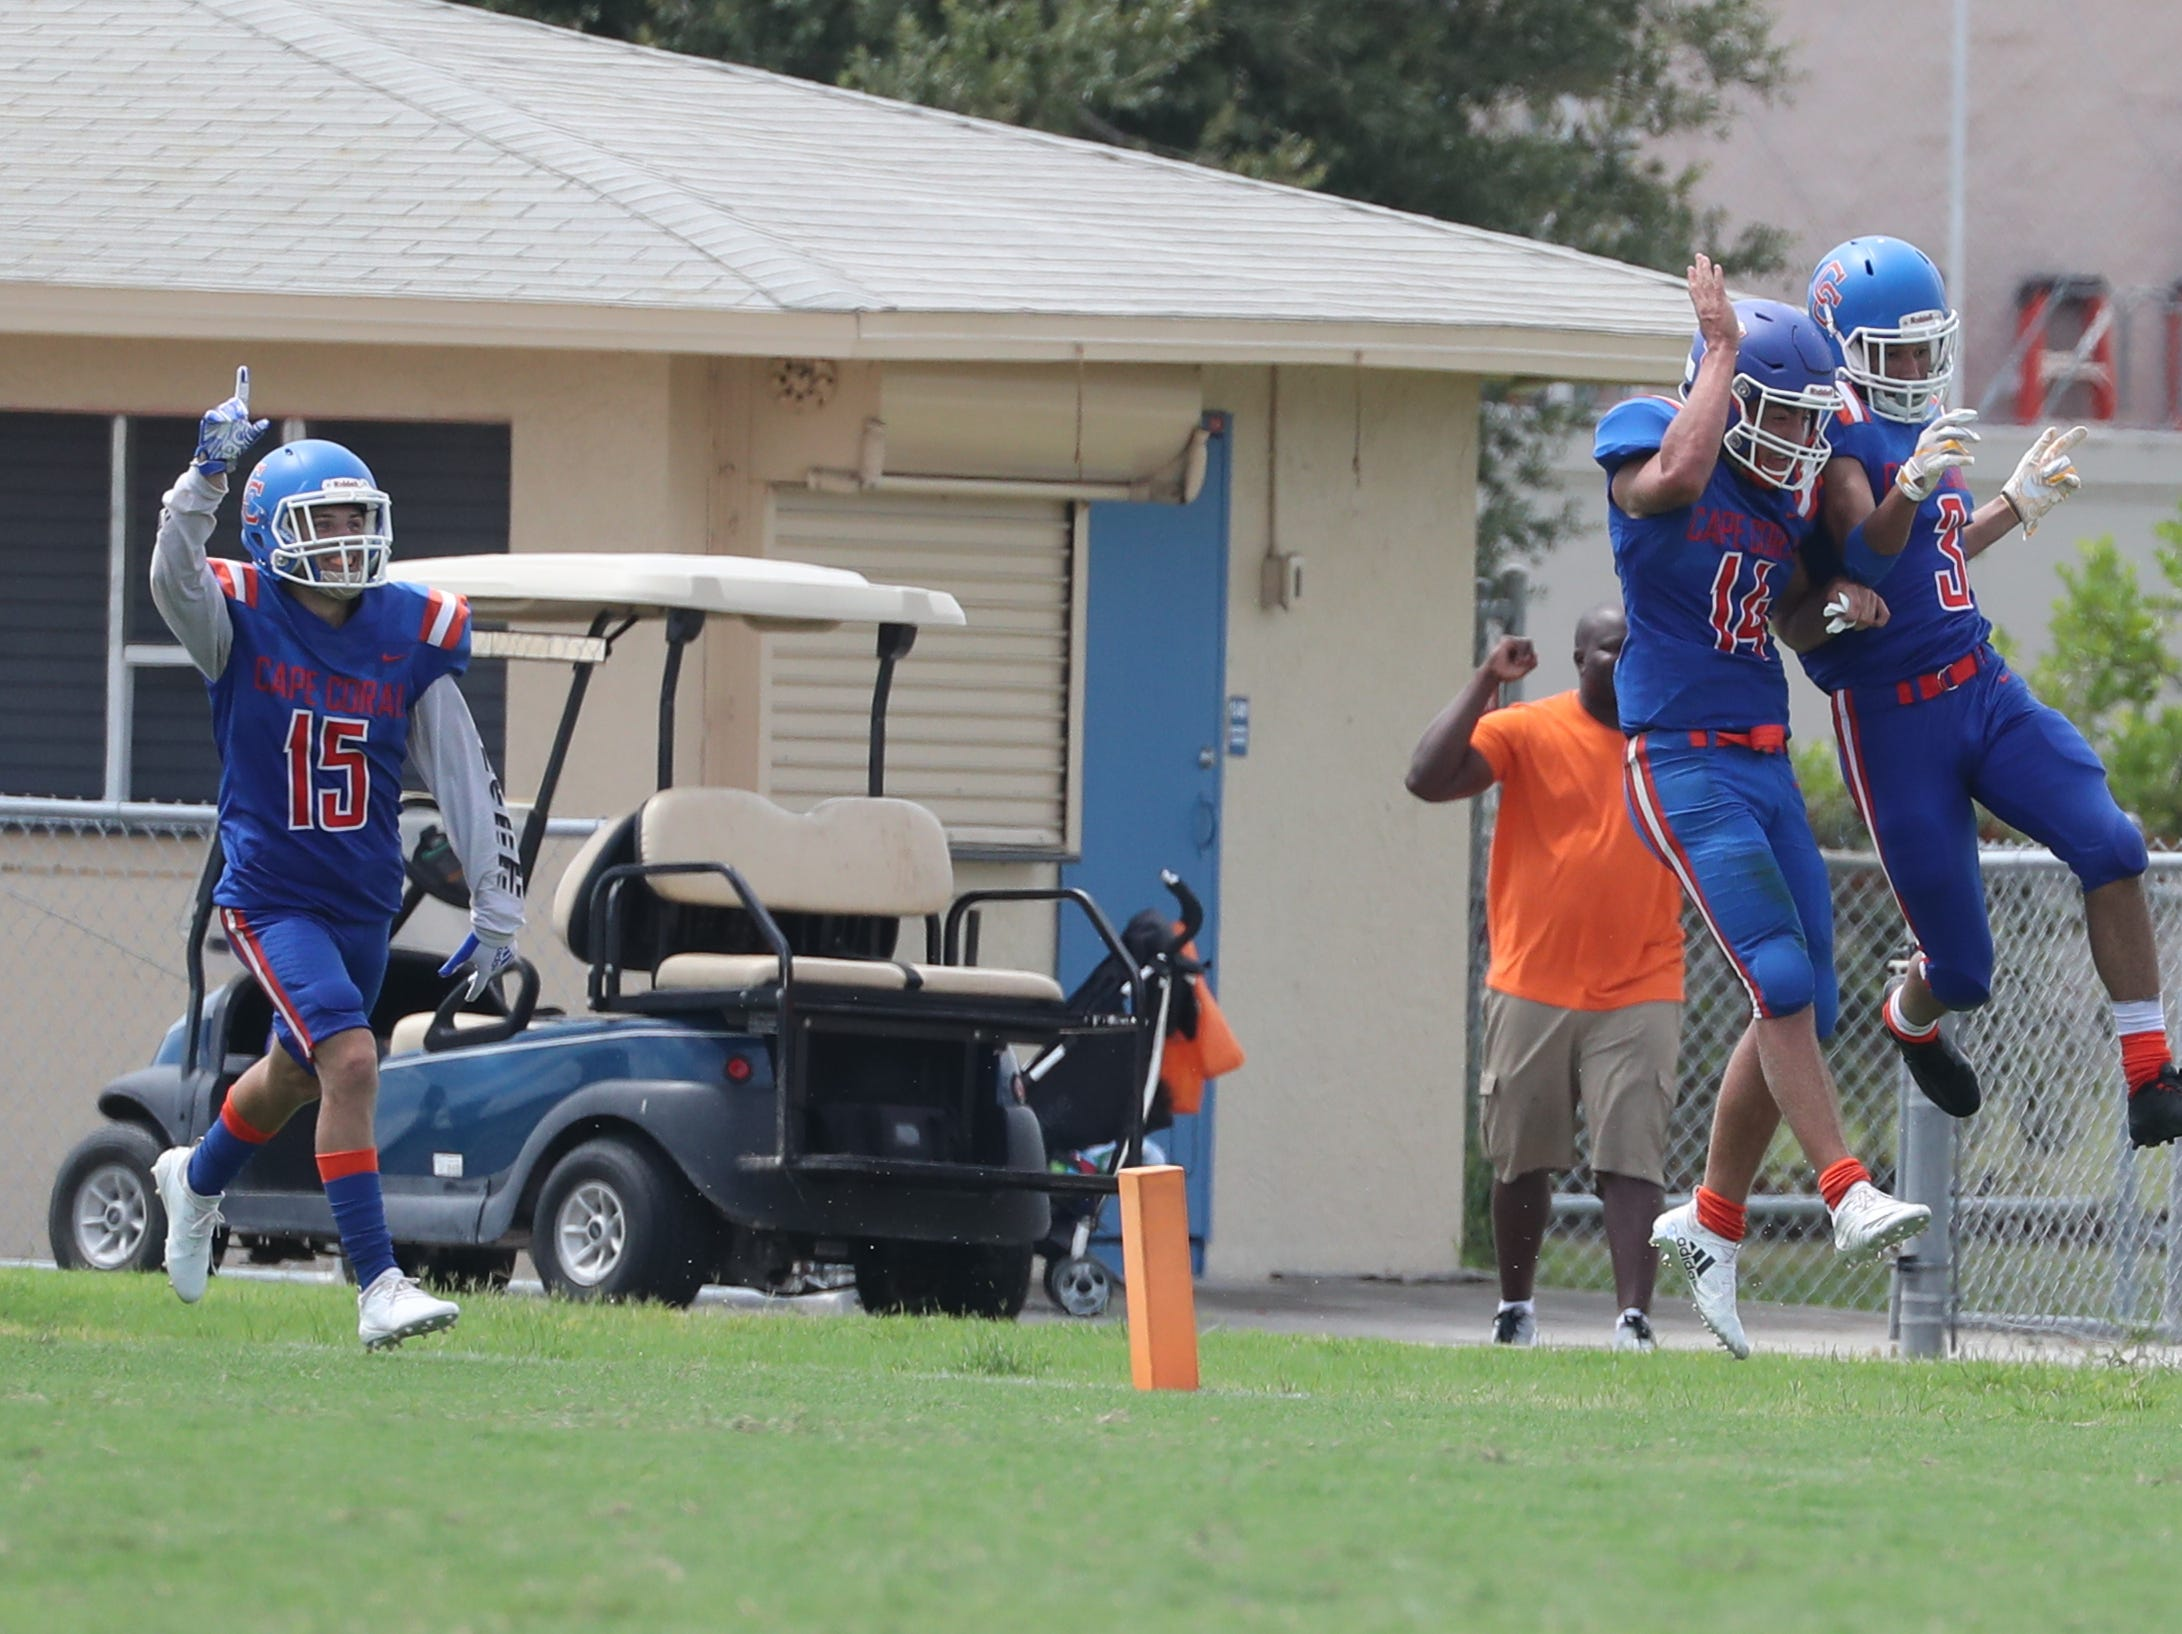 Jaydin Feliz Cape Coral High School grabbed the pass over the top of Tommy Beemer, South Fort Myers, and goes on to score. Teammates, (14)Parker Odell and (15)Dylan Shipley celebrate with him. Cape beat South Fort Myers in their Saturday morning game.